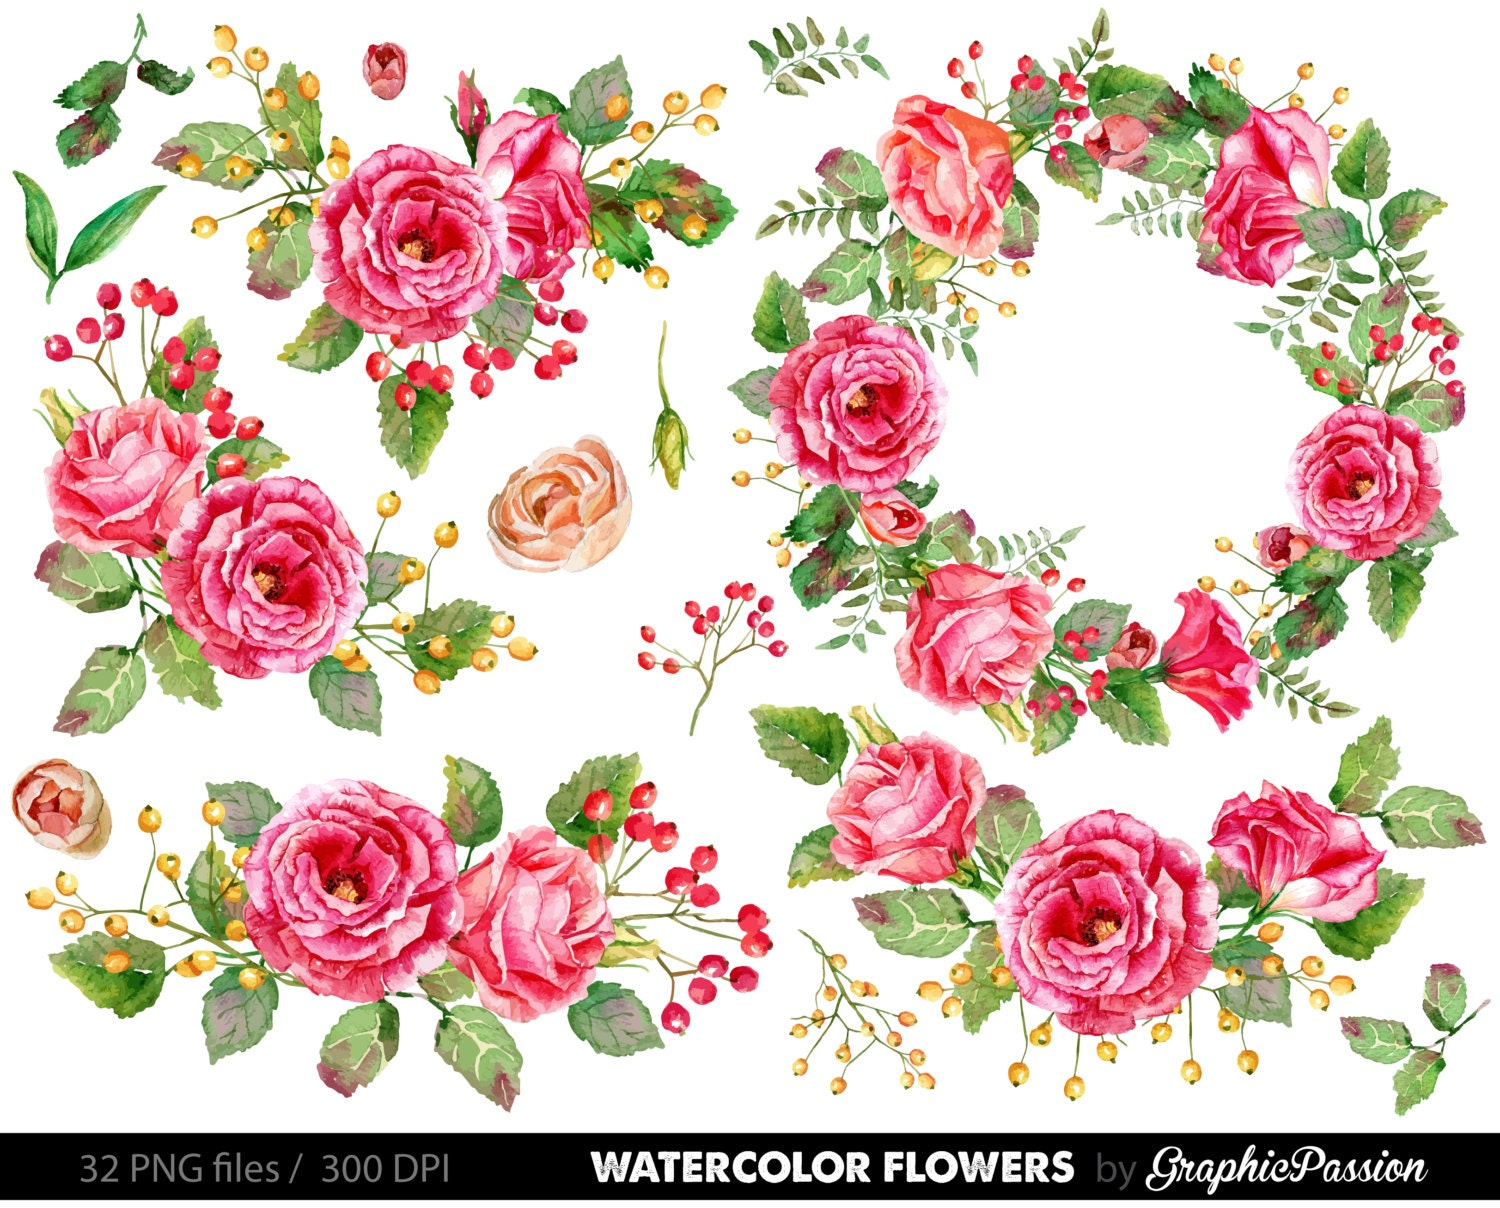 watercolor flower clipart wedding floral clip art floral. Black Bedroom Furniture Sets. Home Design Ideas